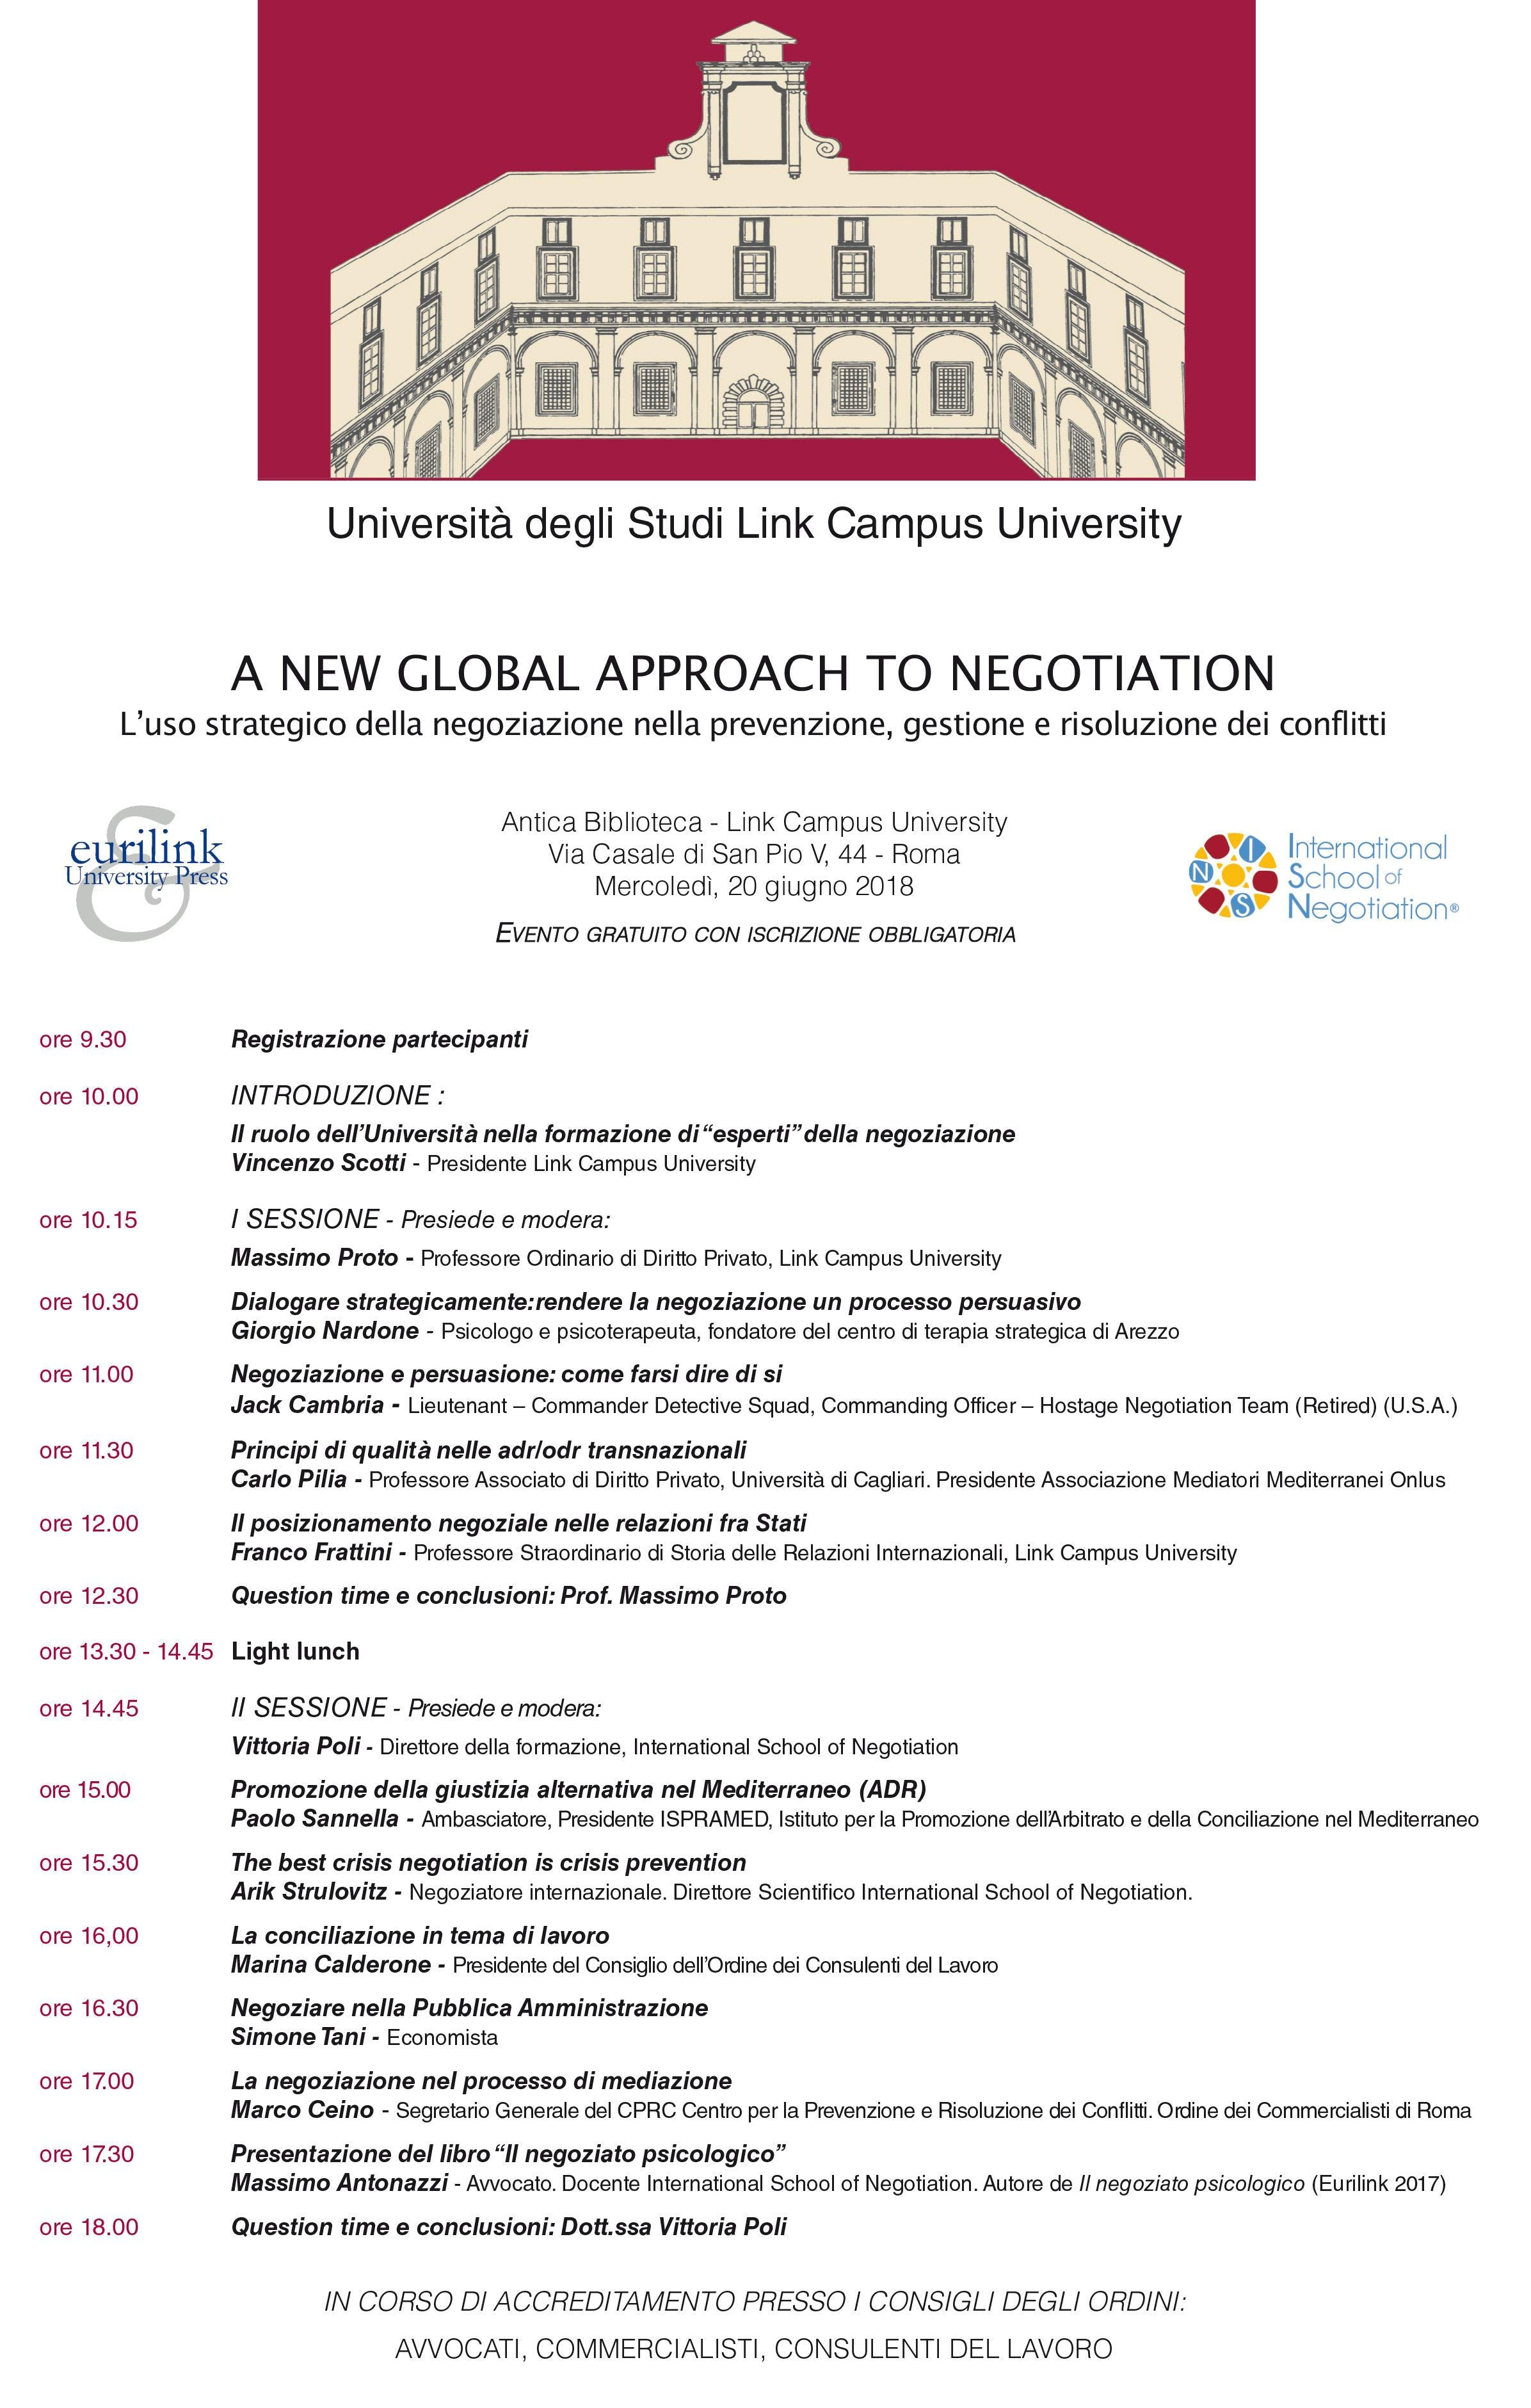 A news global approach to negotiation